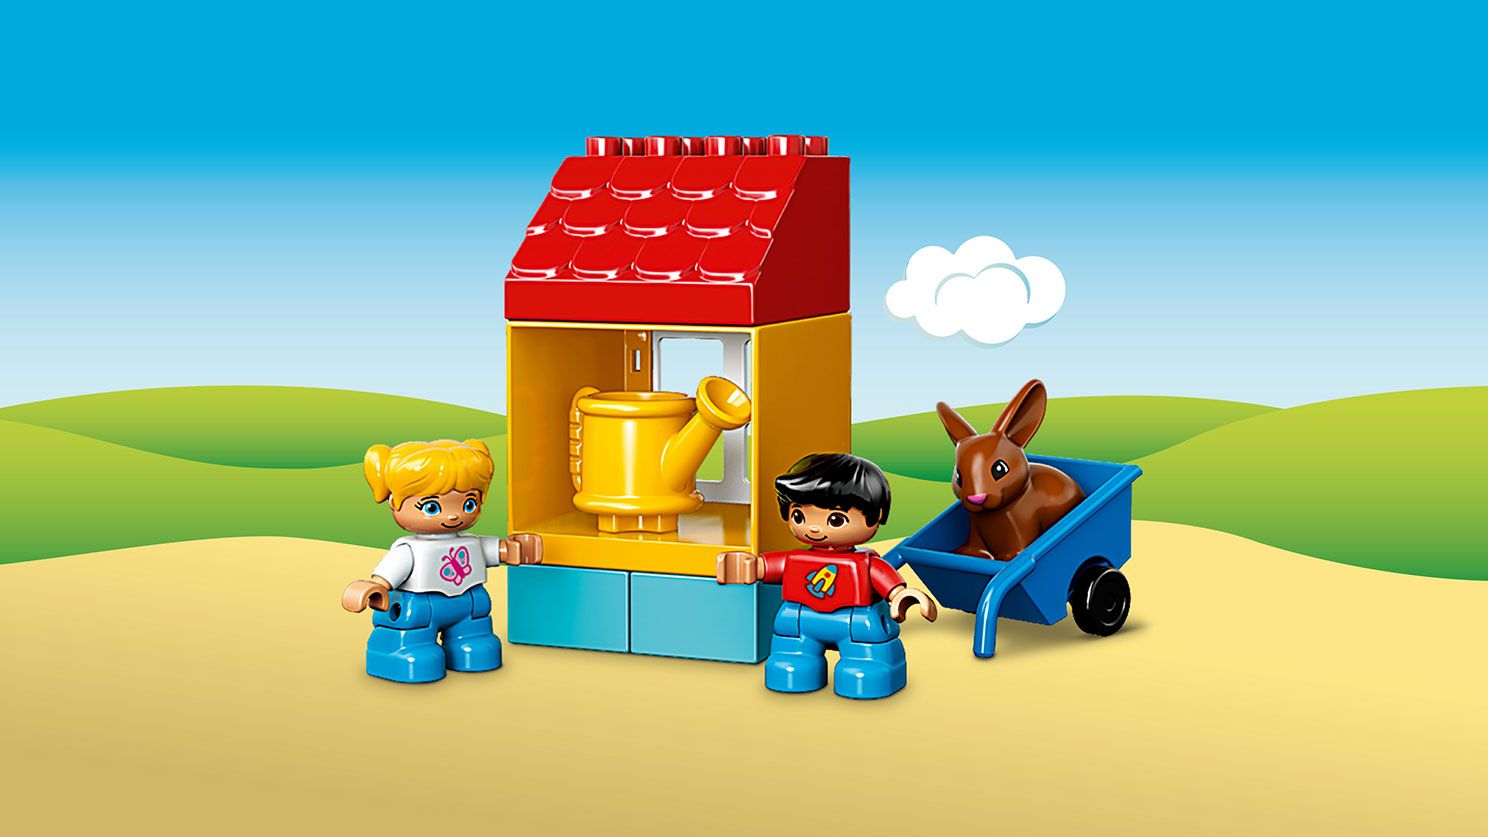 First Duplo Sets, First Garden, May 2016